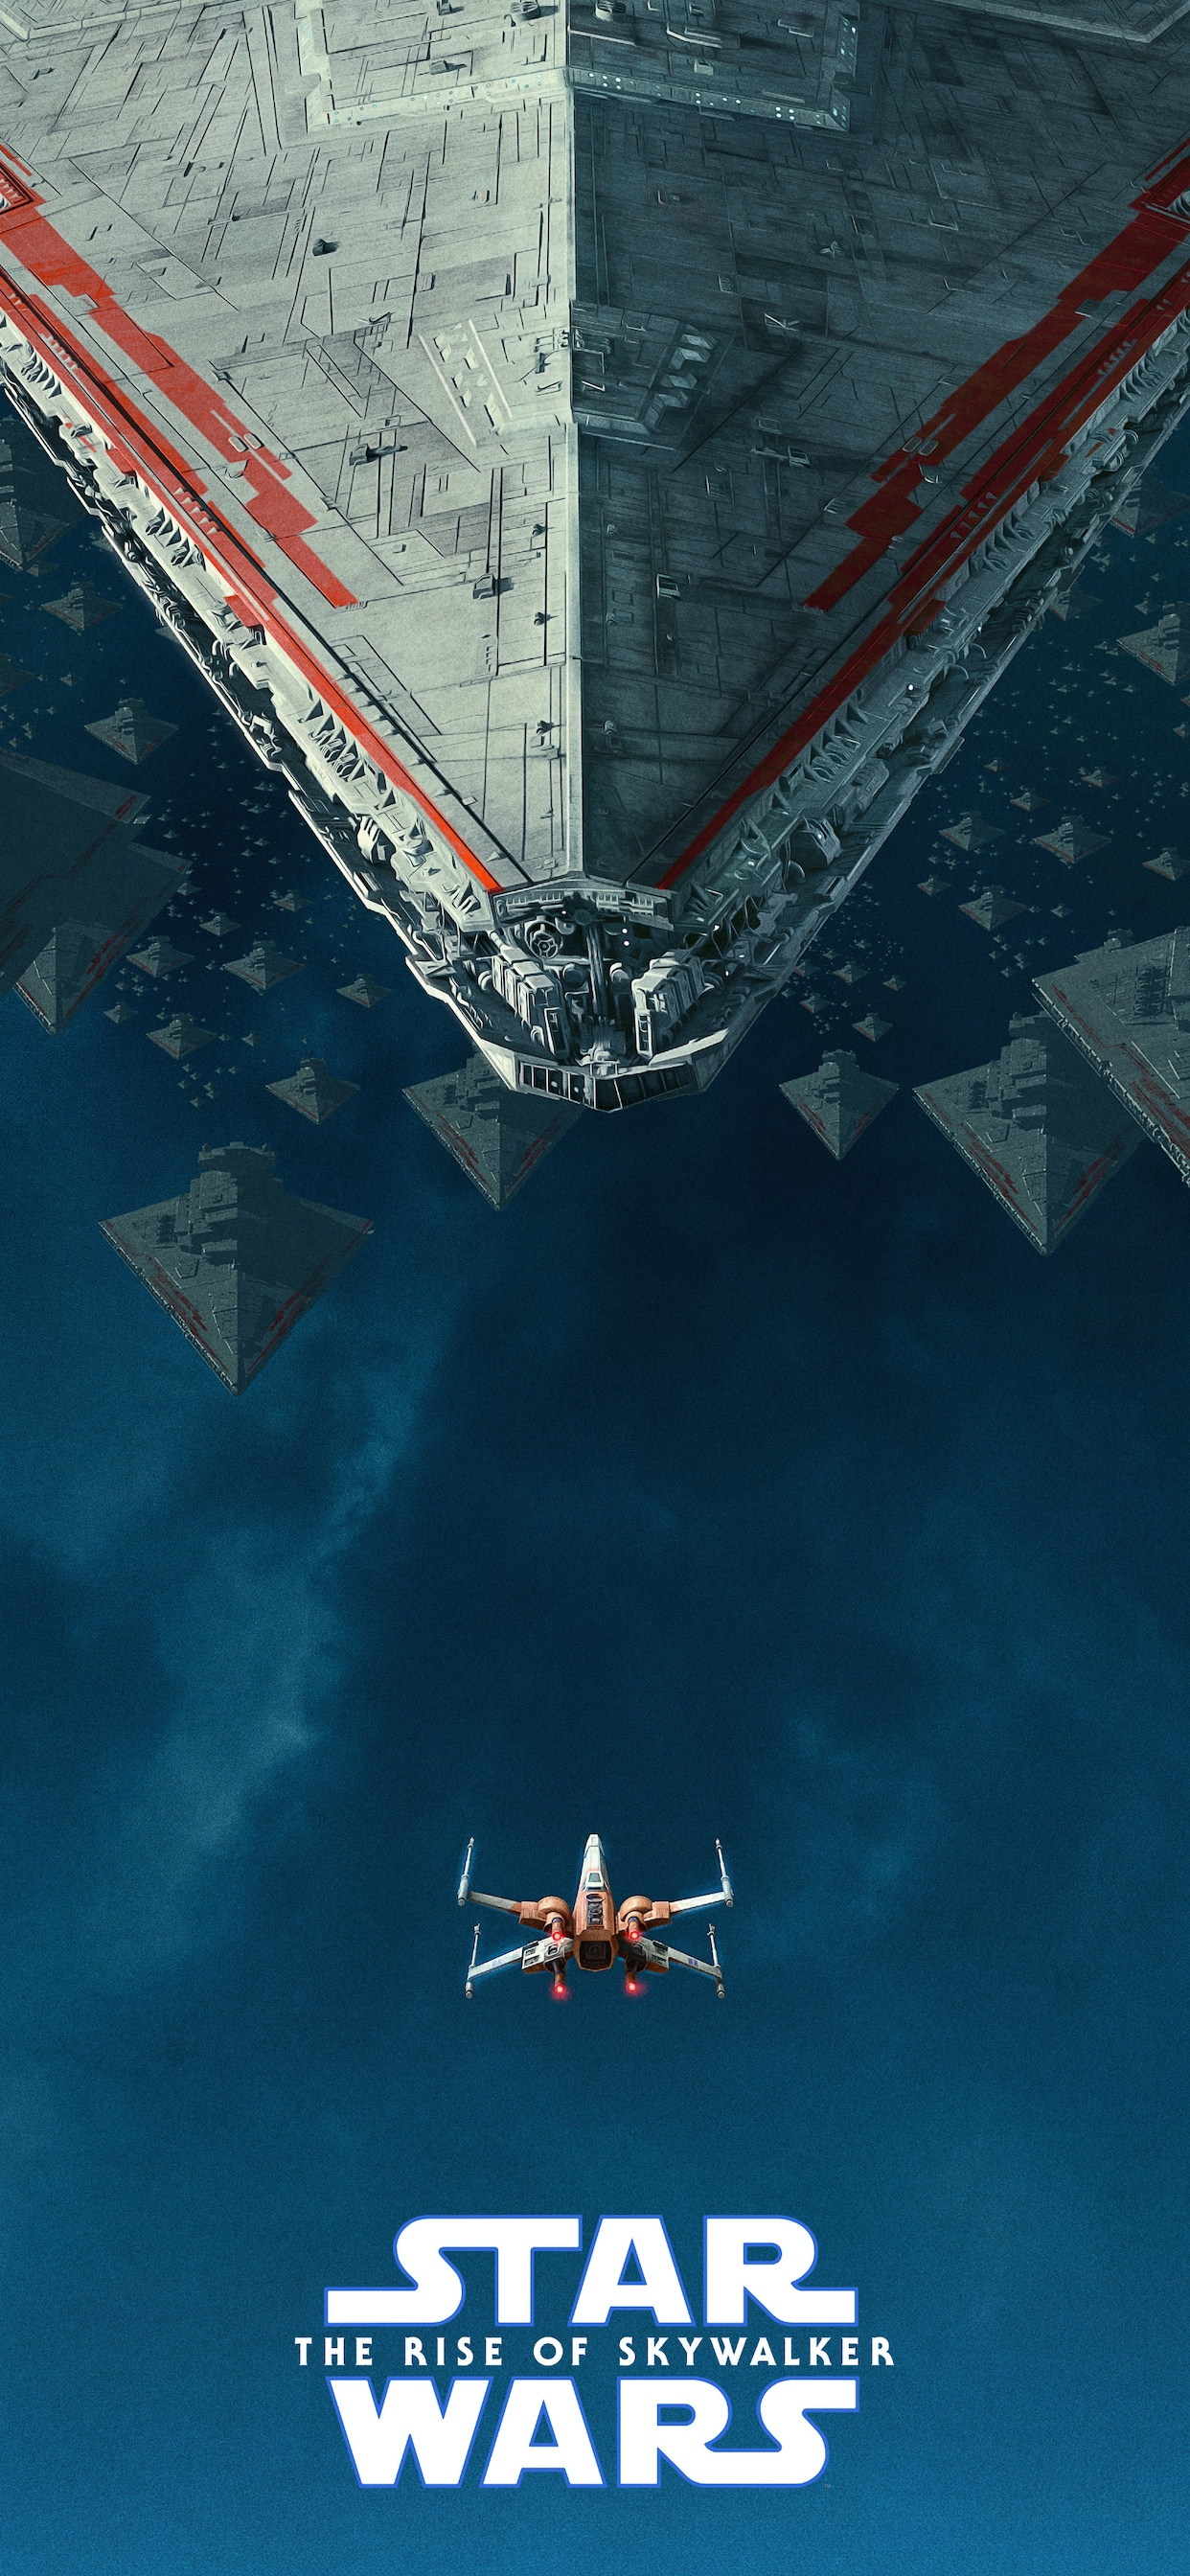 Star Wars Rise of Skywalker Dolby Poster iPhone wallpaper